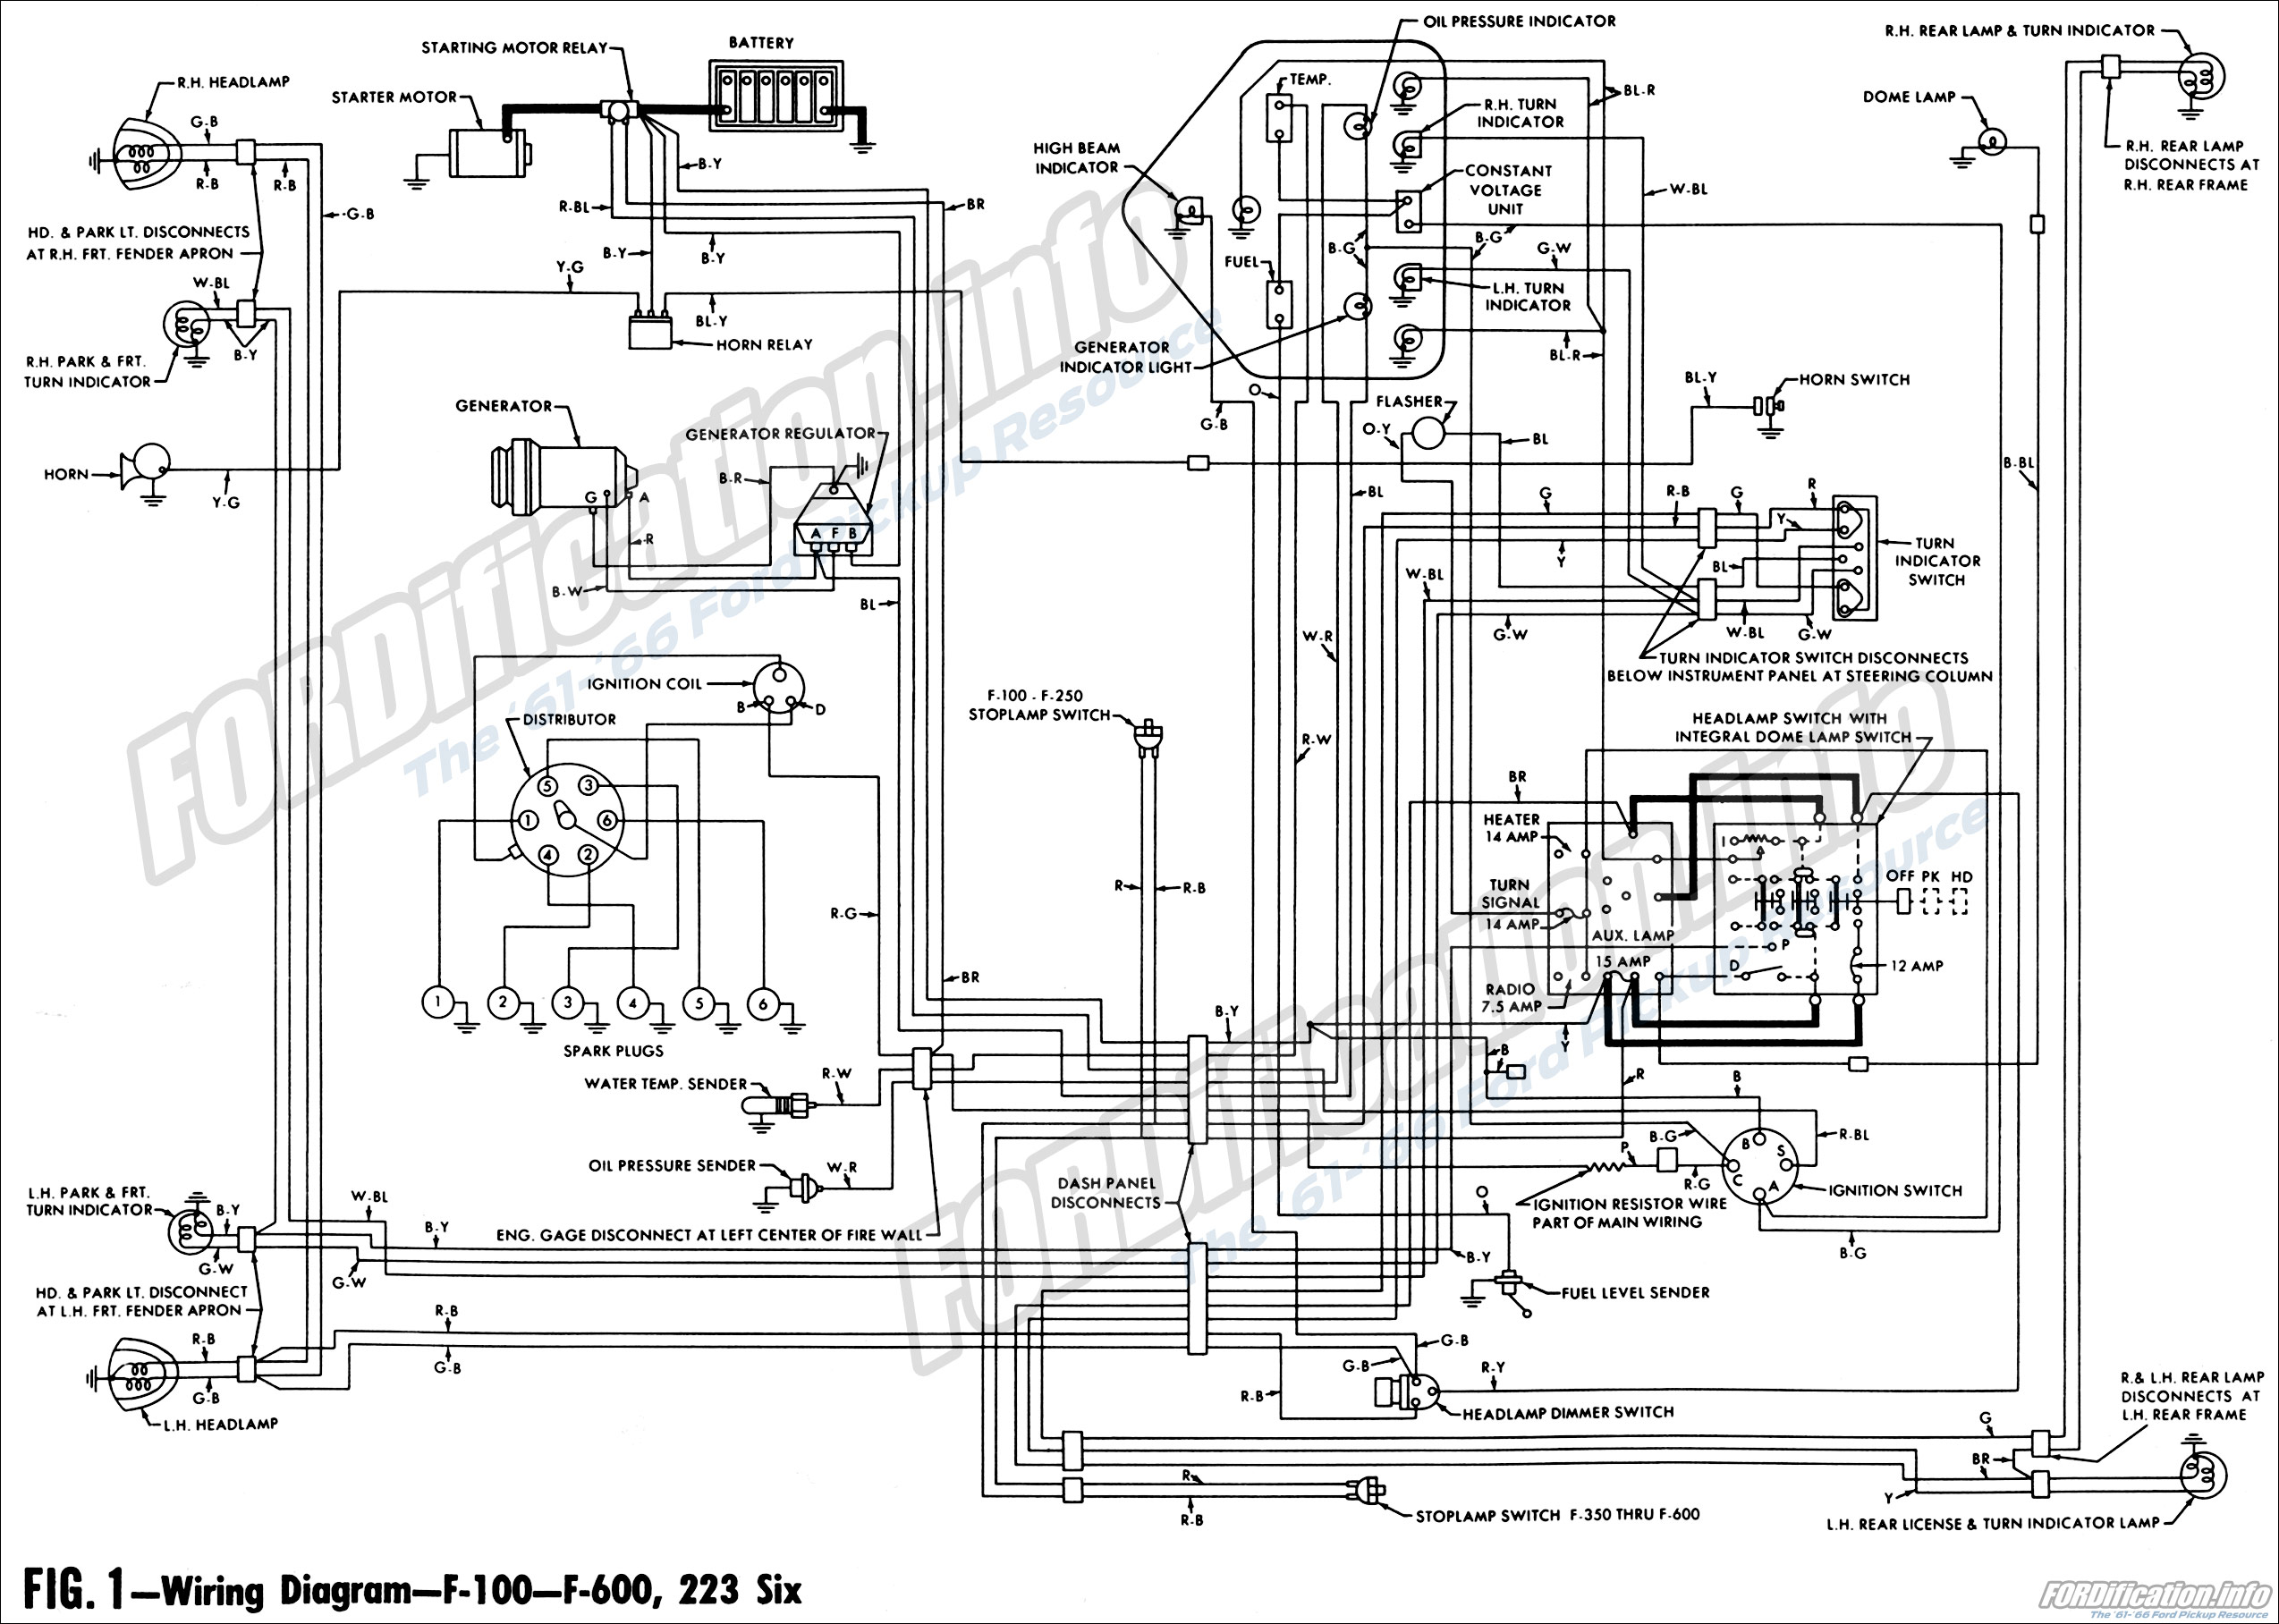 Wiring Diagram - 1961 F100 thru F600, ...